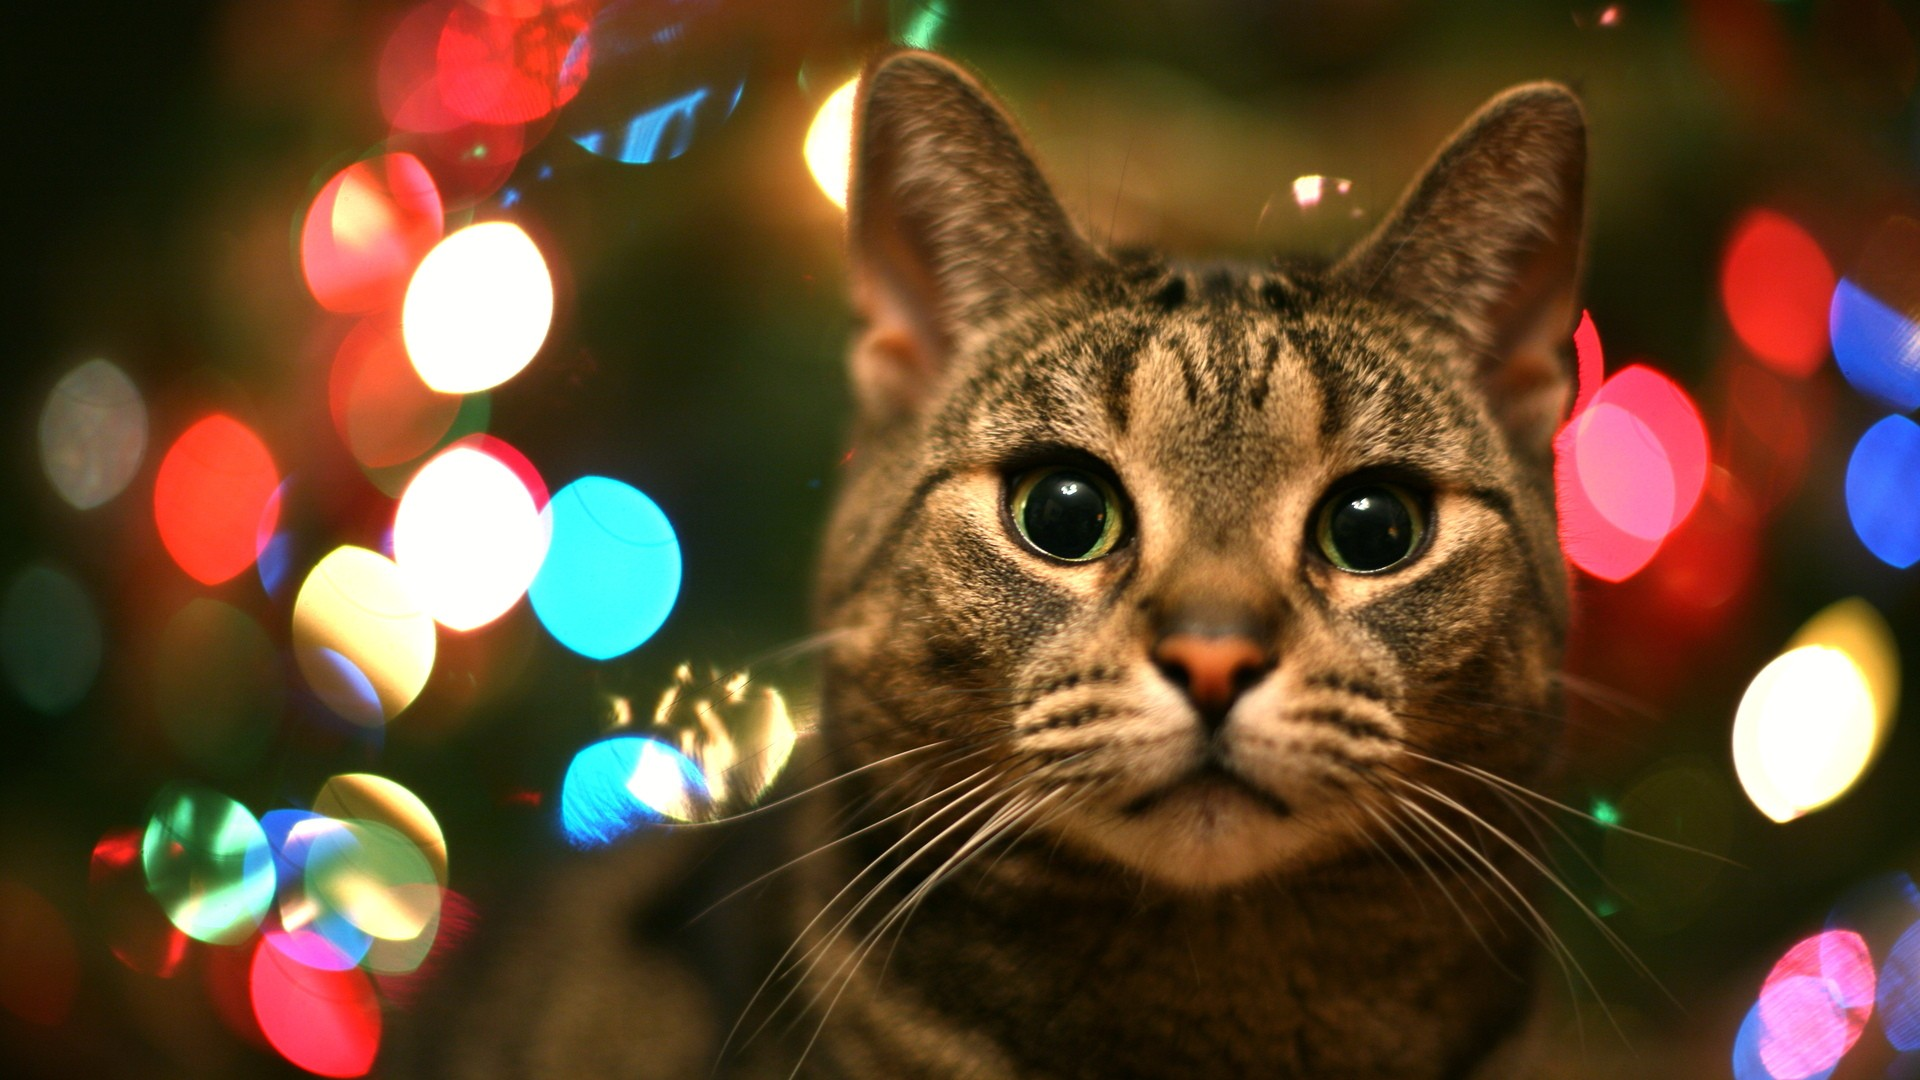 Cat Animal Christmas Wallpaper Photography Wallpaper with 1920x1080 1920x1080